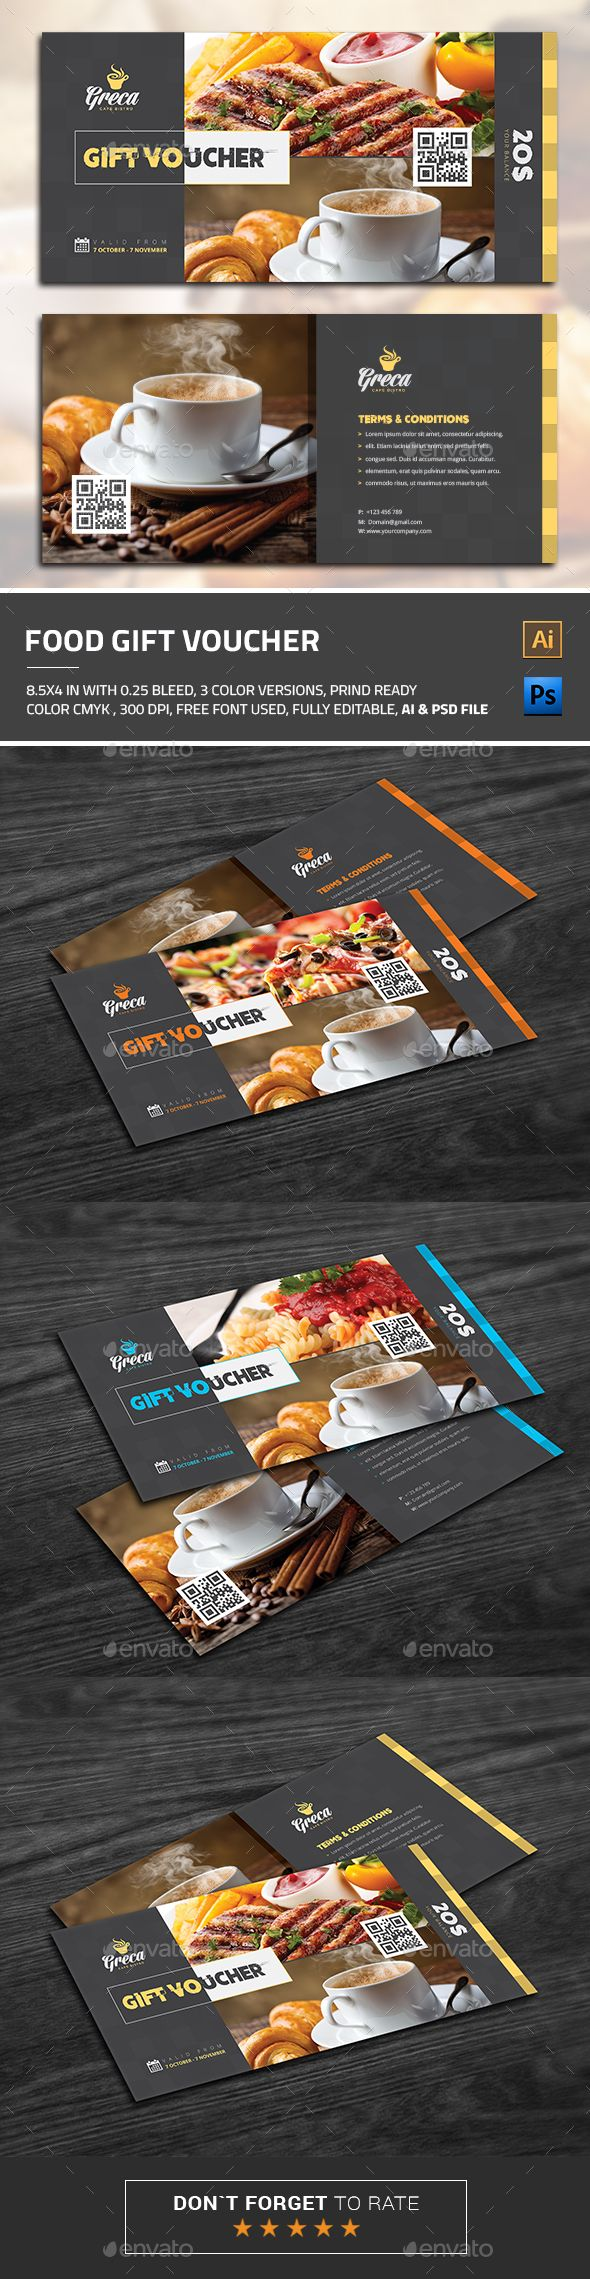 9 best nice voucher images on pinterest coupon design gift gift voucher yelopaper Choice Image